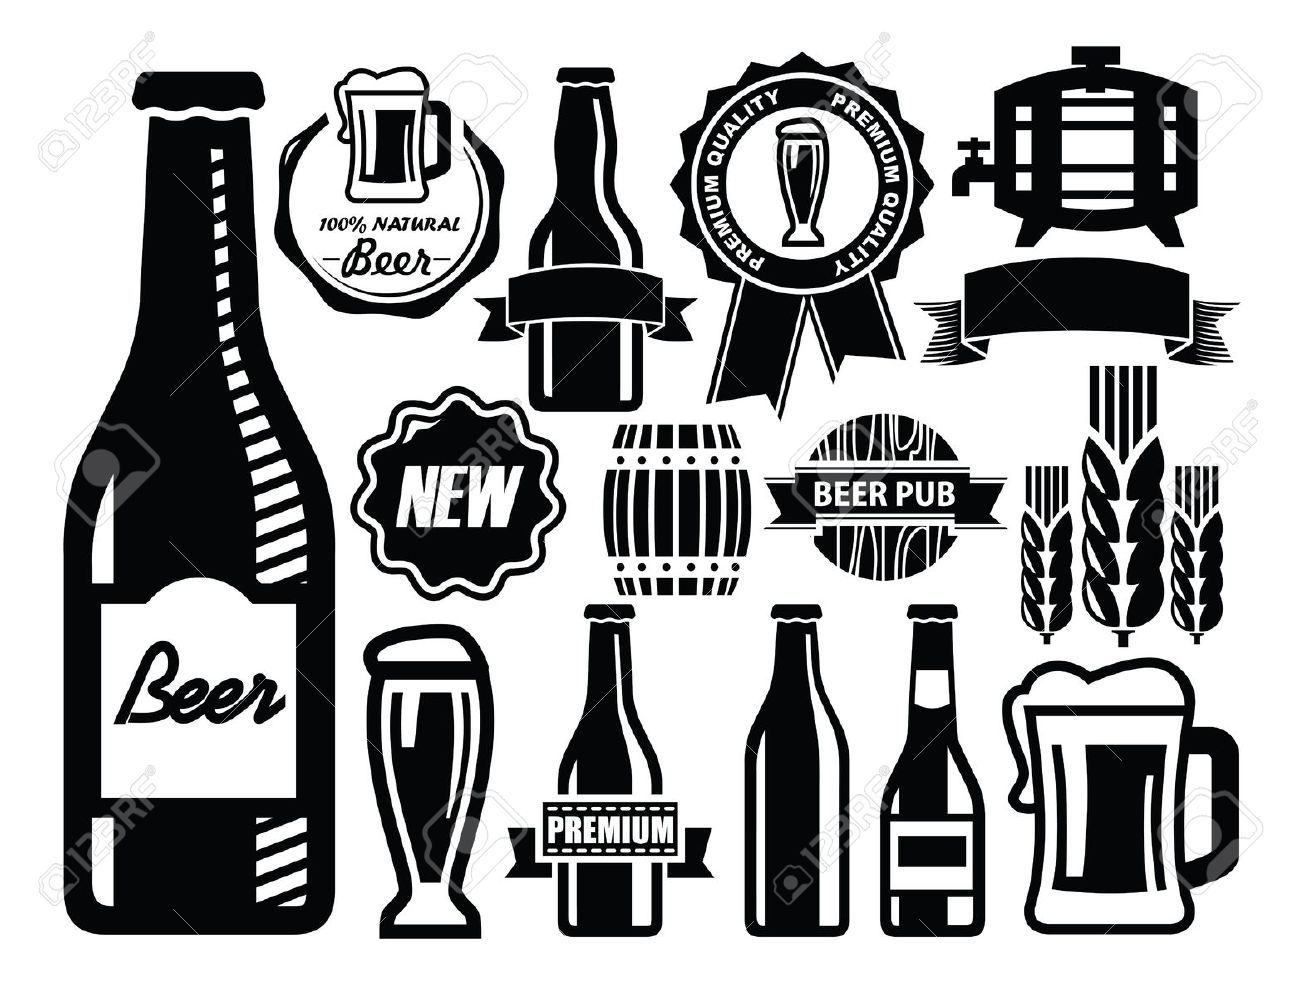 Beer bottle cheers clipart black and white vector royalty free download Cheers Beer Stock Vector Illustration And Royalty Free Cheers Beer ... vector royalty free download